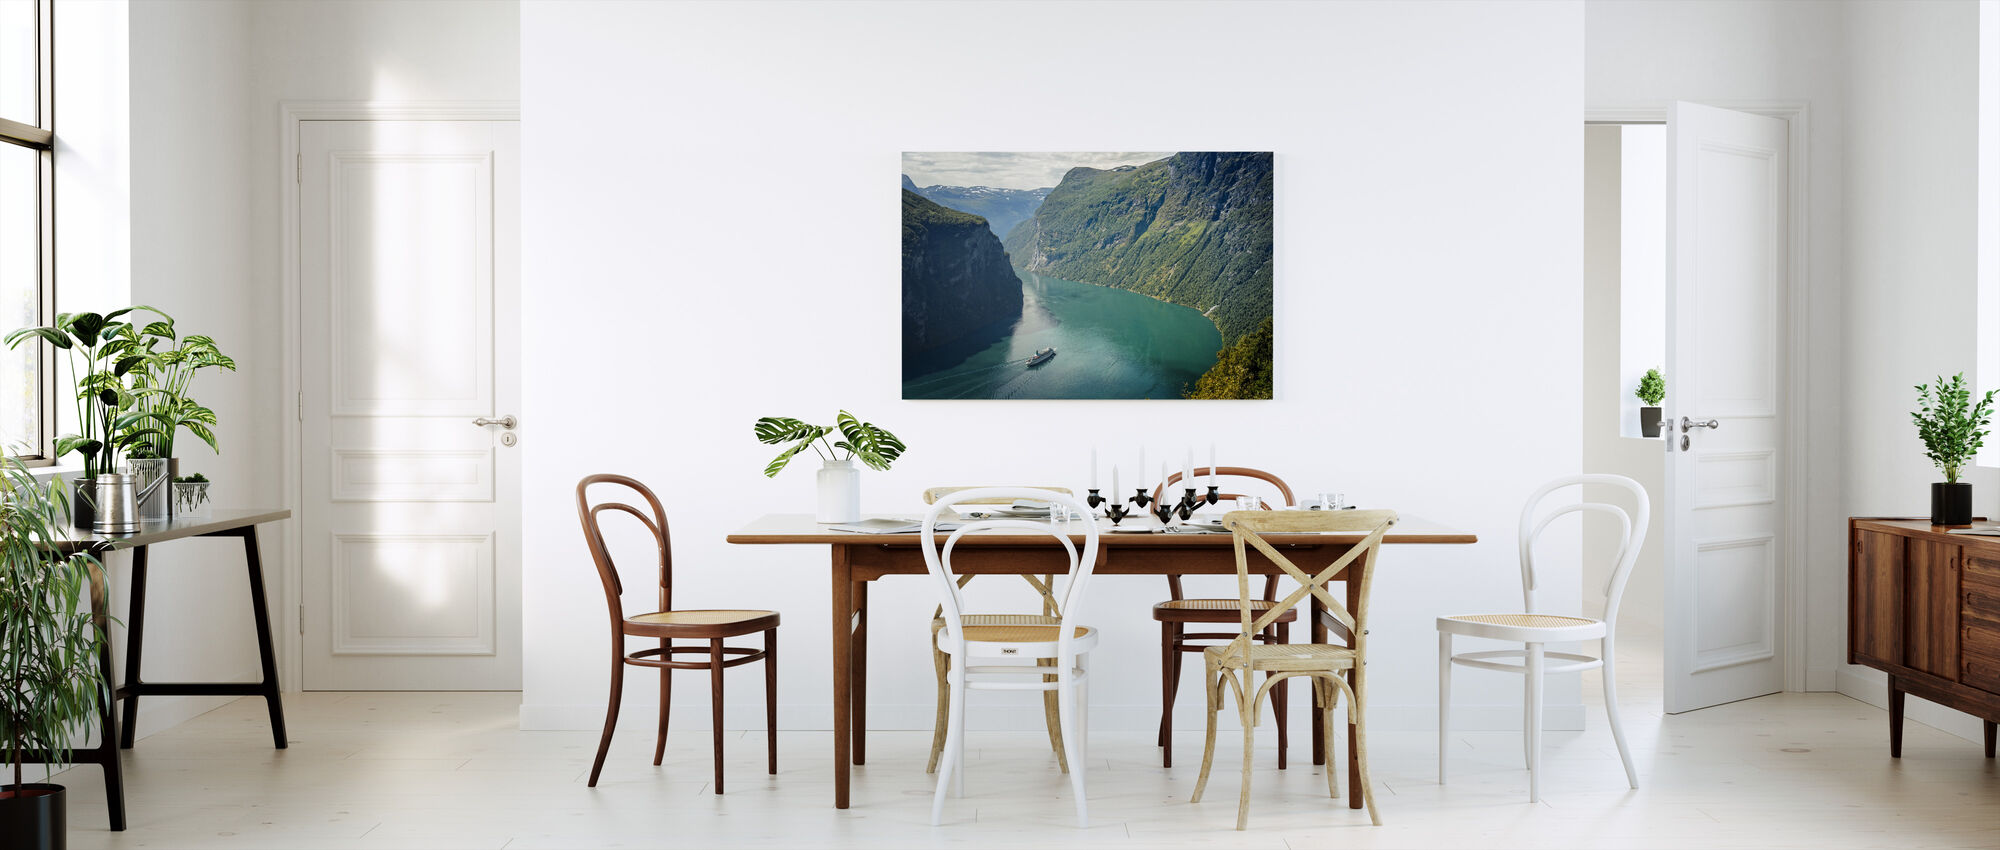 green water of geirangerfjord norway impression sur toile en ligne pas cher photowall. Black Bedroom Furniture Sets. Home Design Ideas